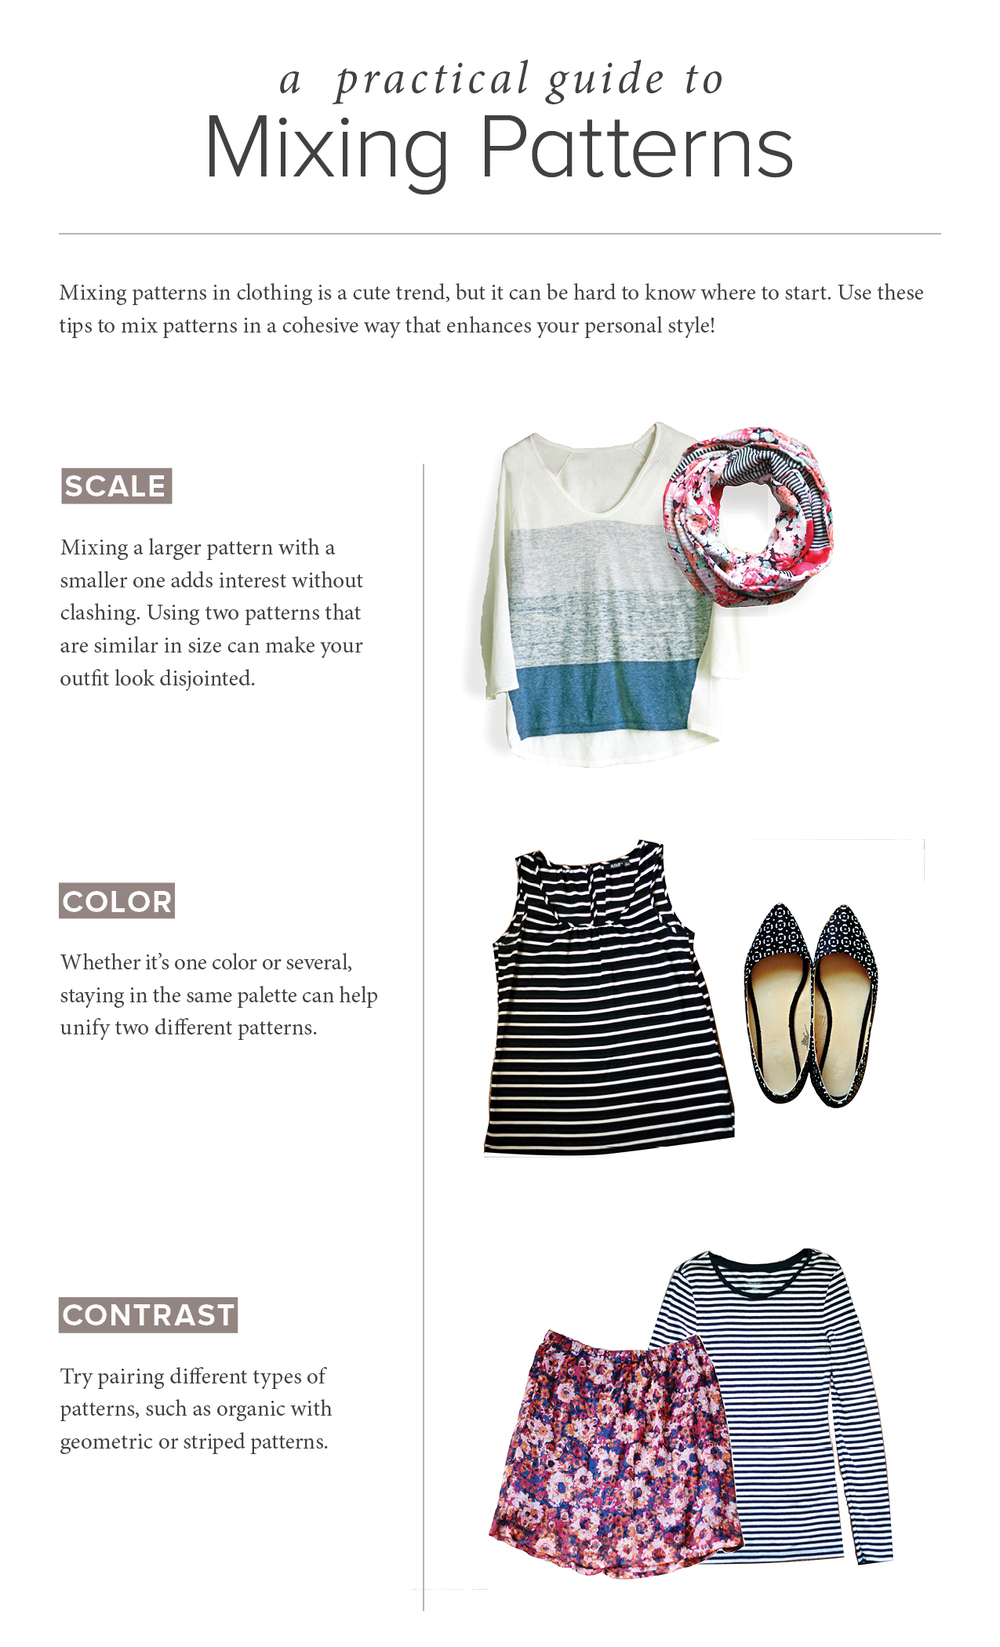 mixing patterns in clothing